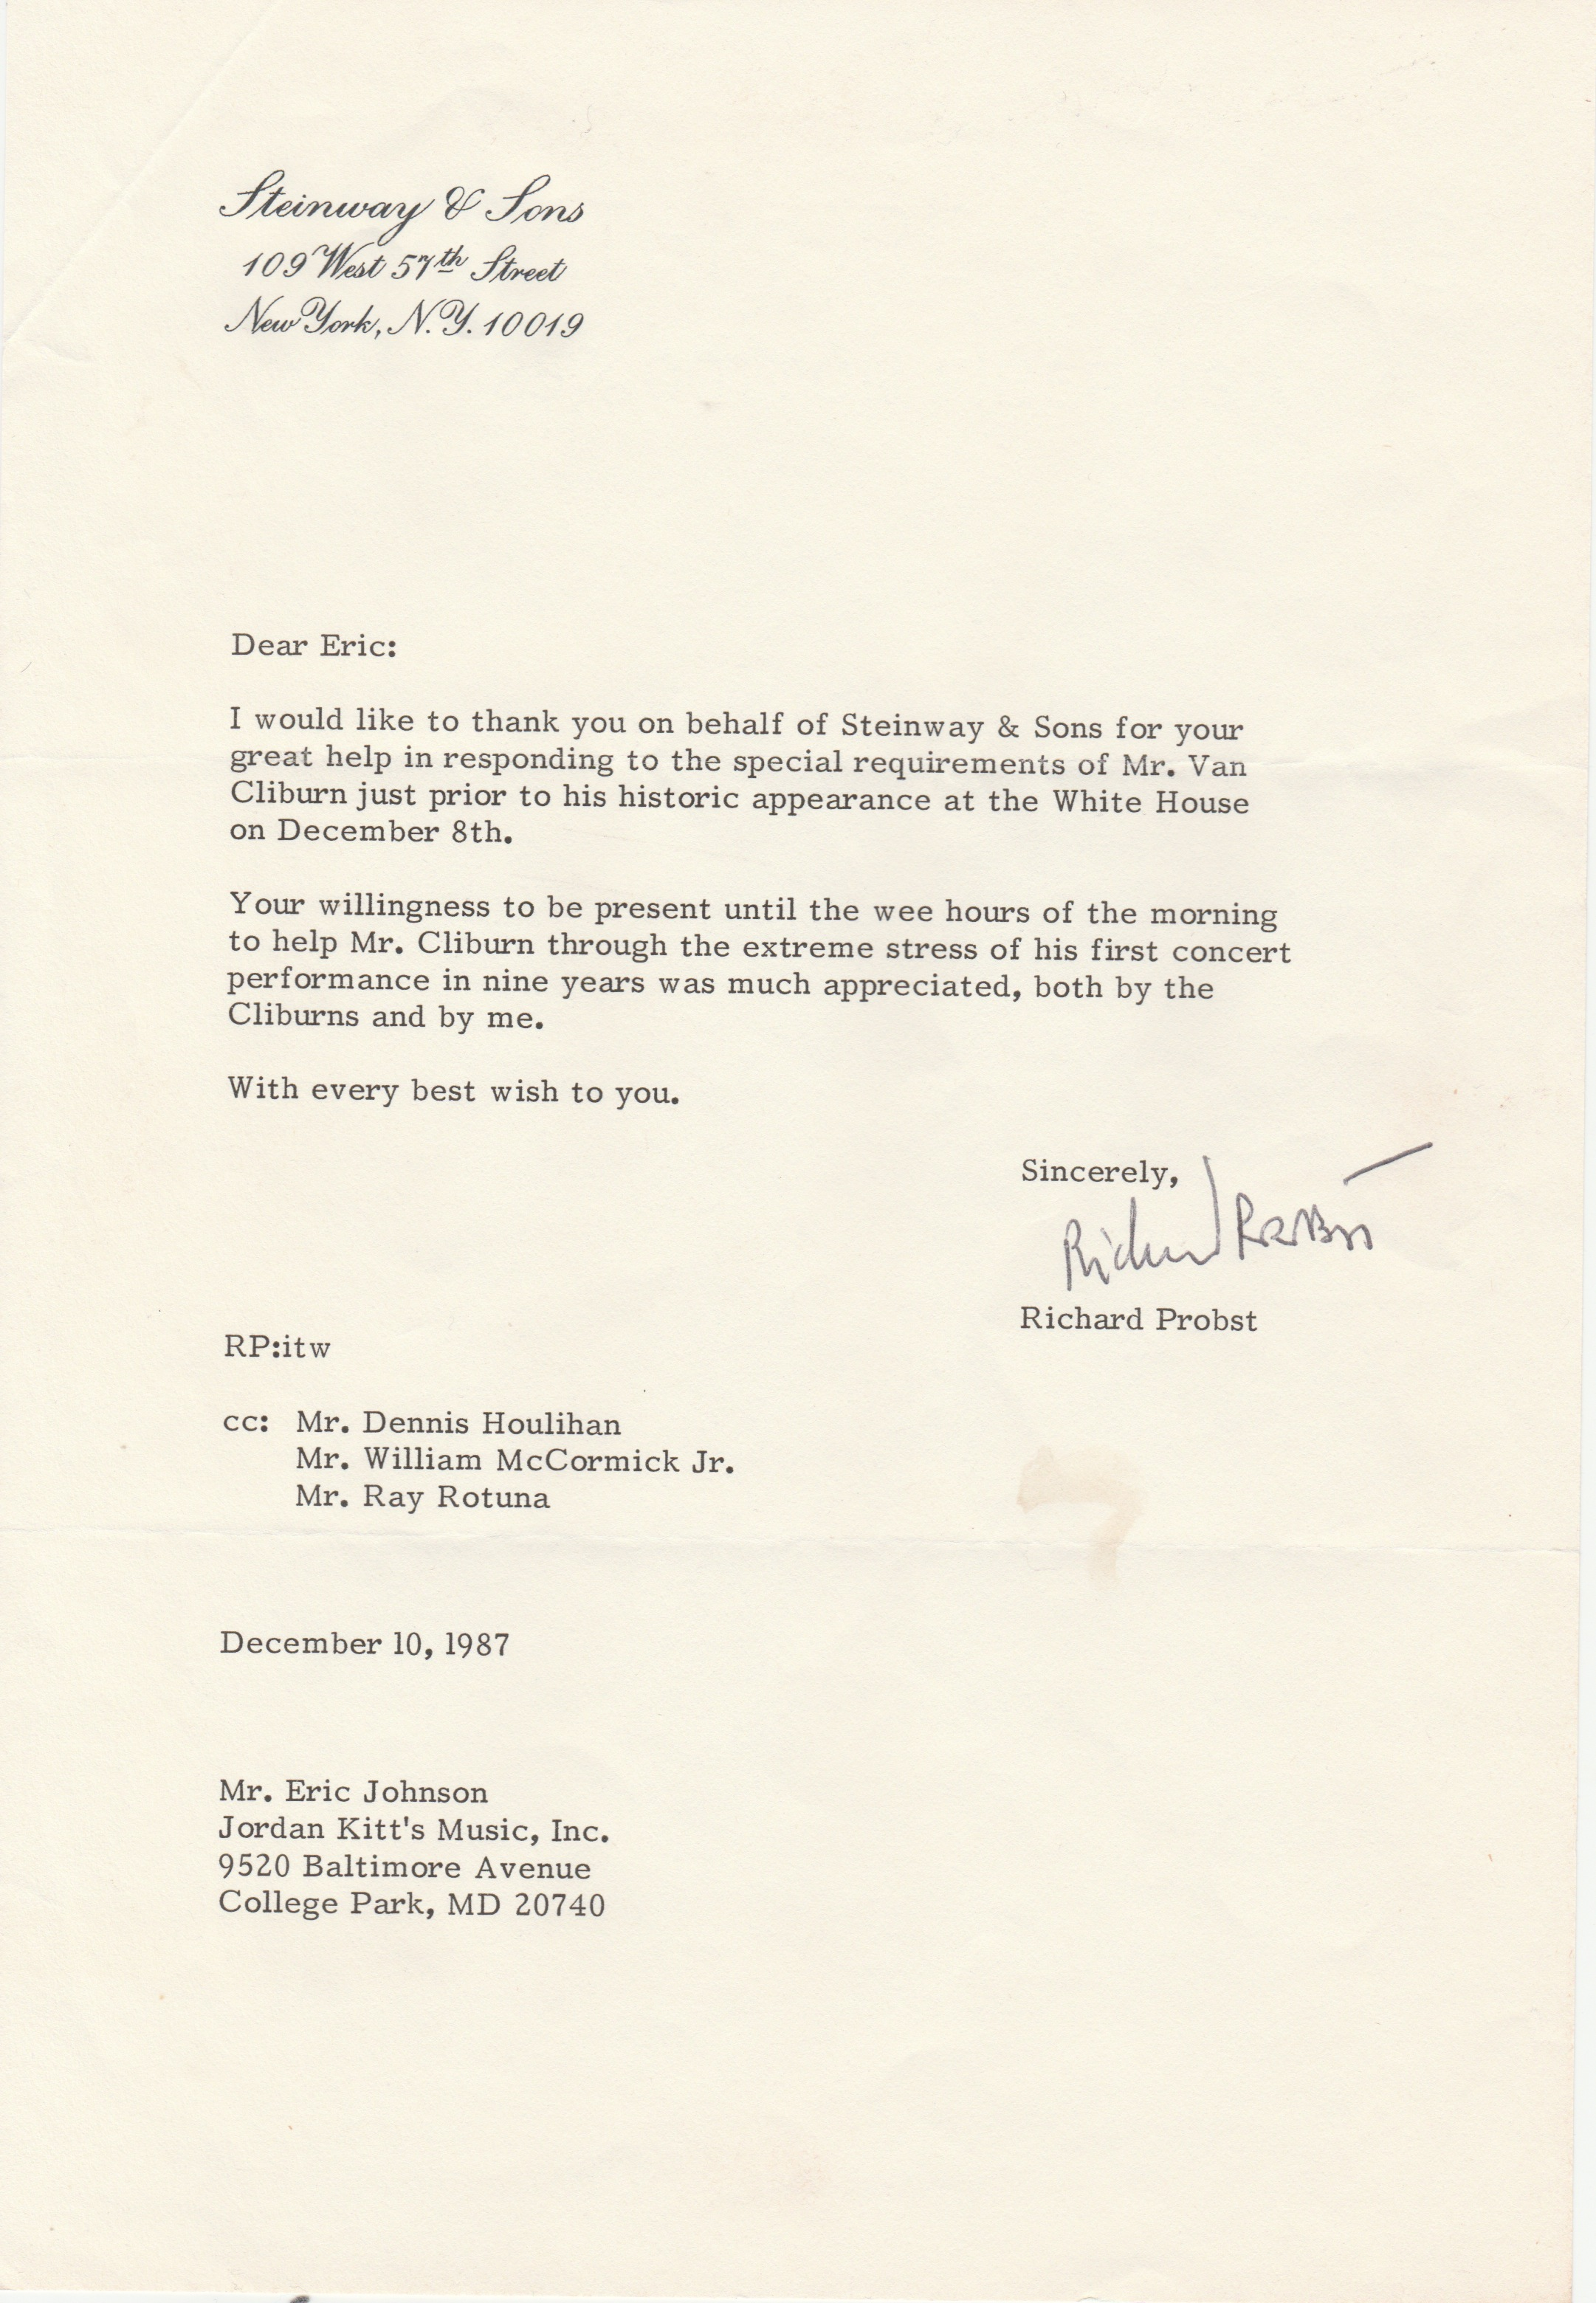 A letter from Steinway